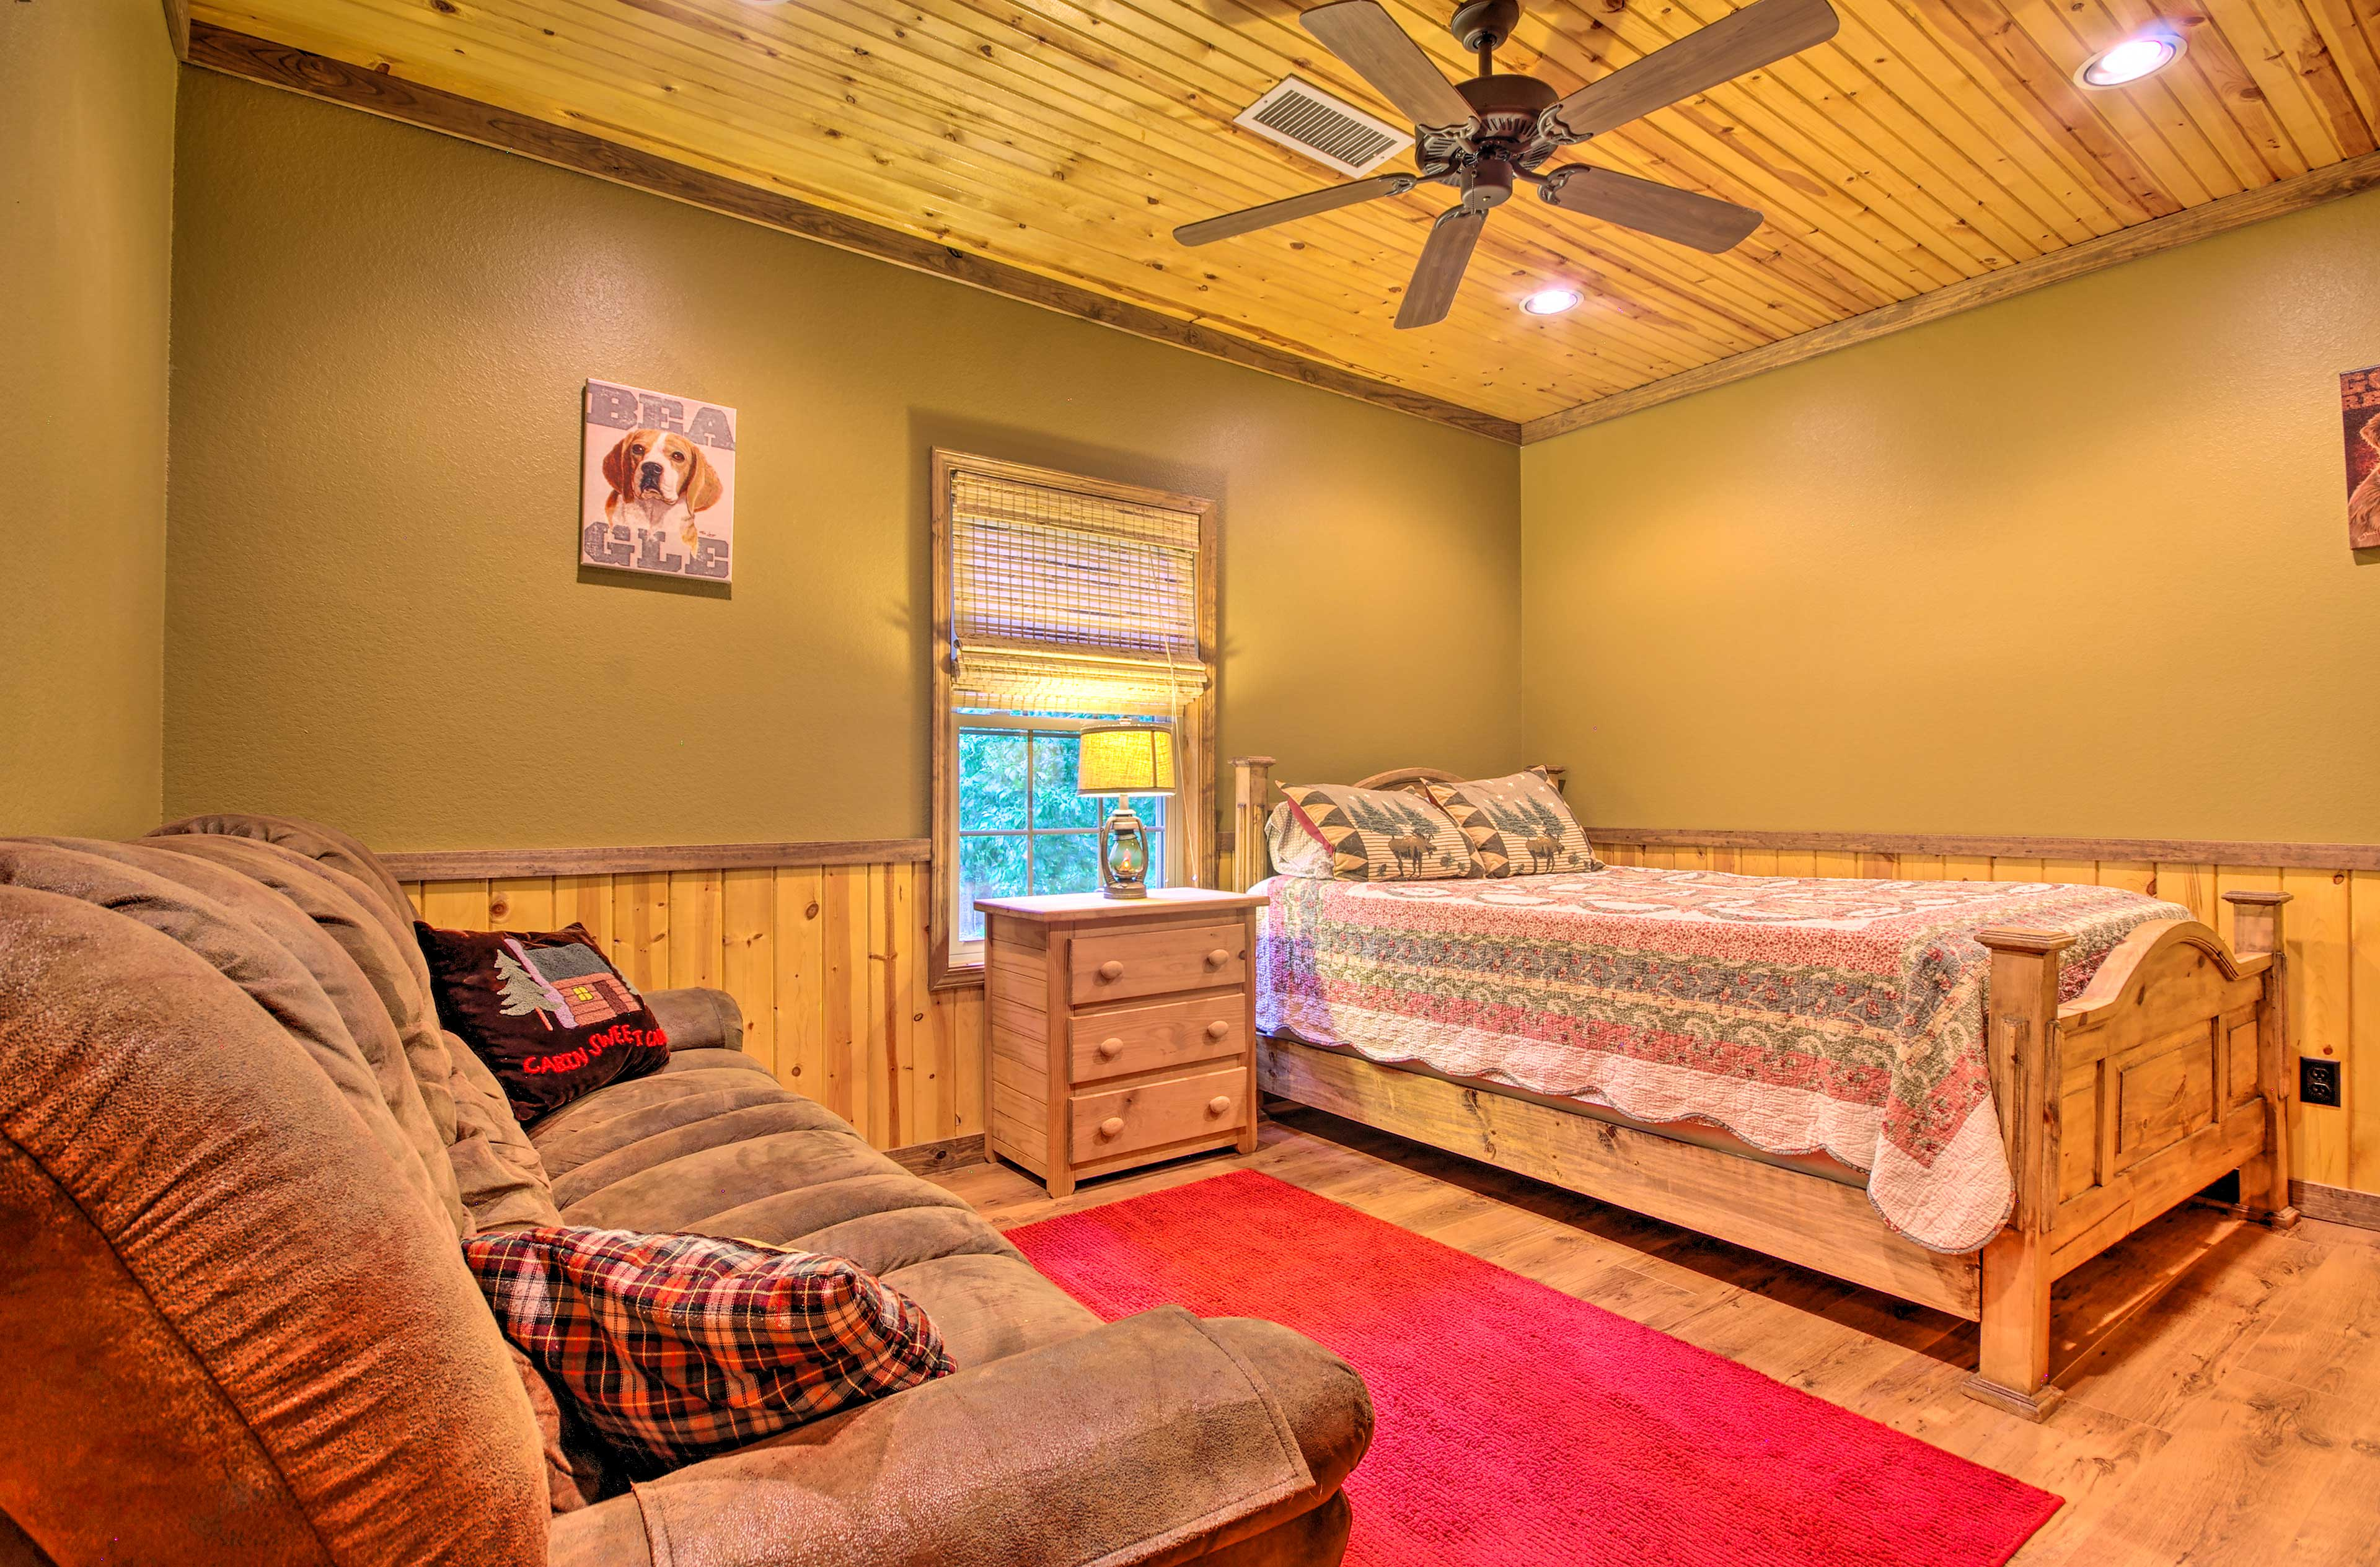 The fourth bedroom features a queen-sized bed.